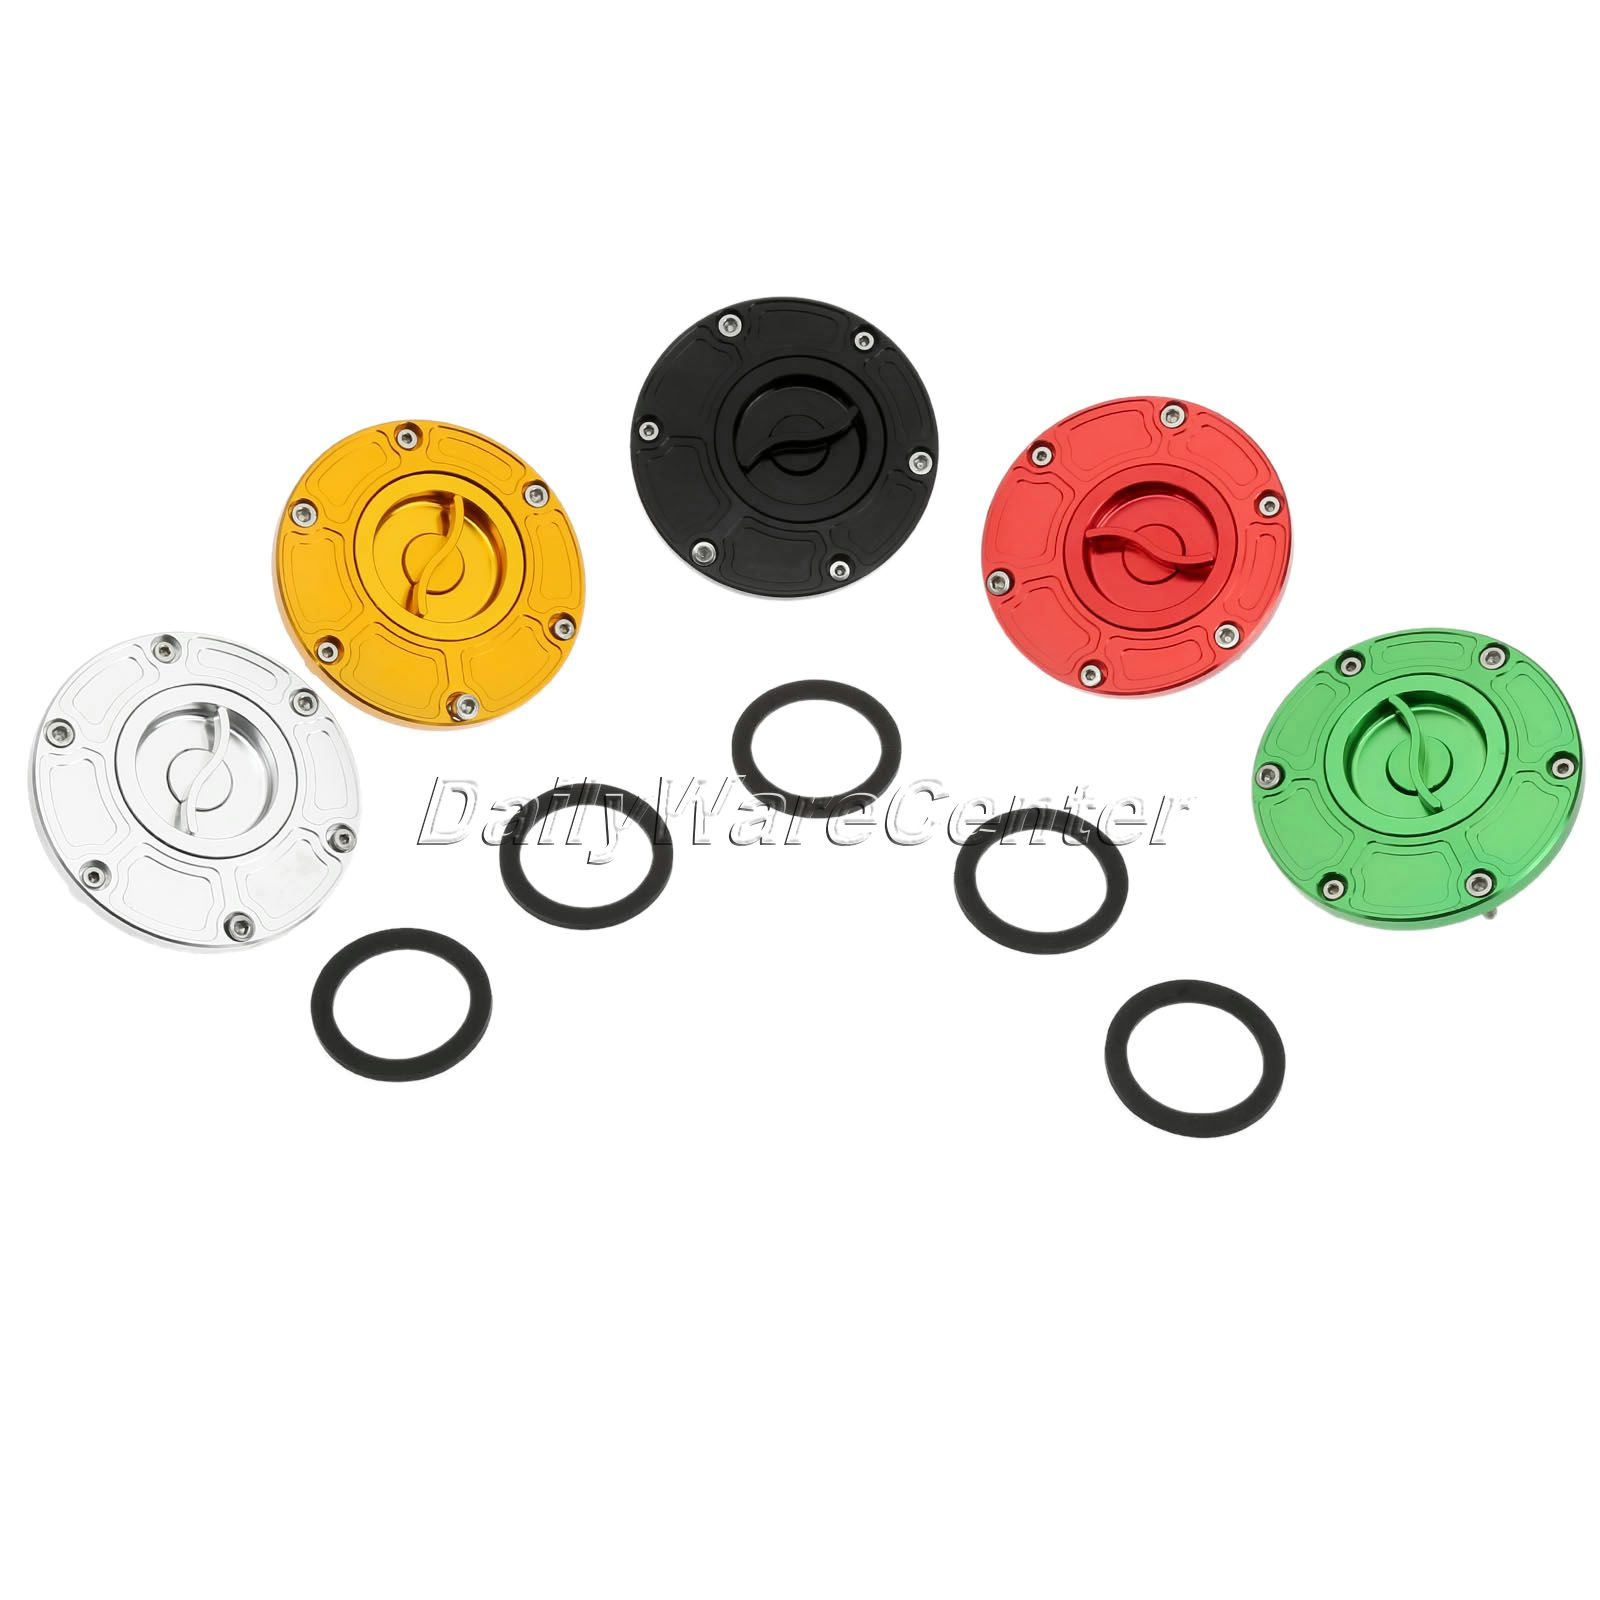 CNC Motorcycle Keyless Brake Flued Gas Tank Cap Oil Tank Cover for Aprilia KTM Duke Triumph Rocket III Motorbike Pitbike Parts